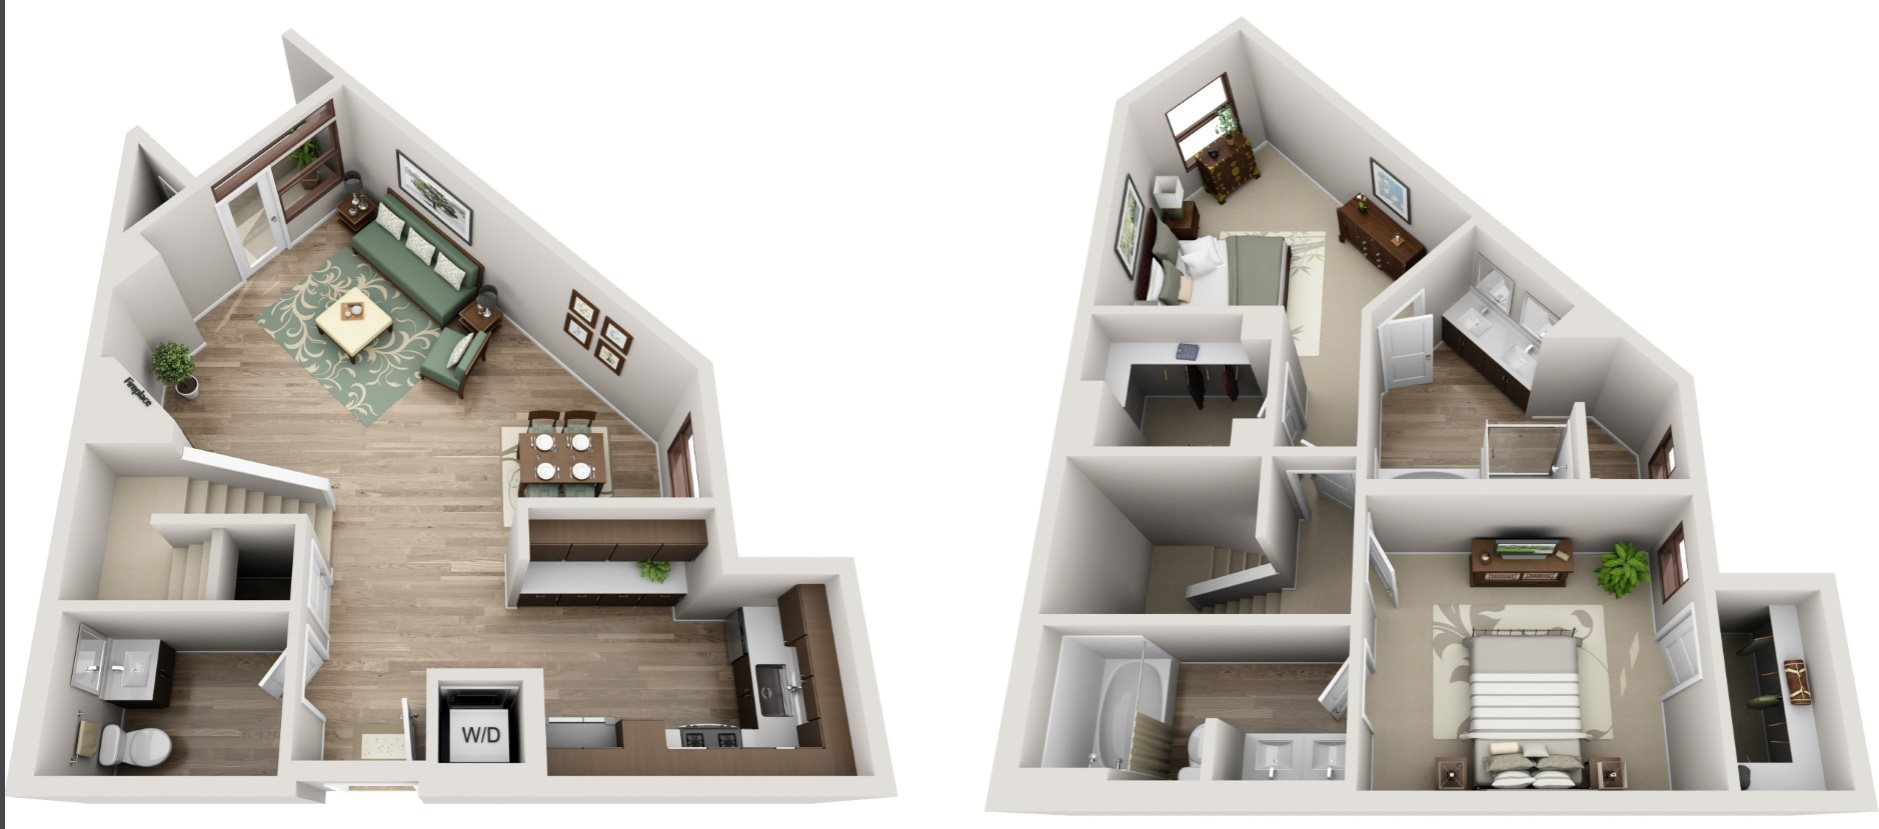 The Glendon_Los Angeles CA_Floor Plan_ATH_Two Bedroom Two and a Half Bathroom